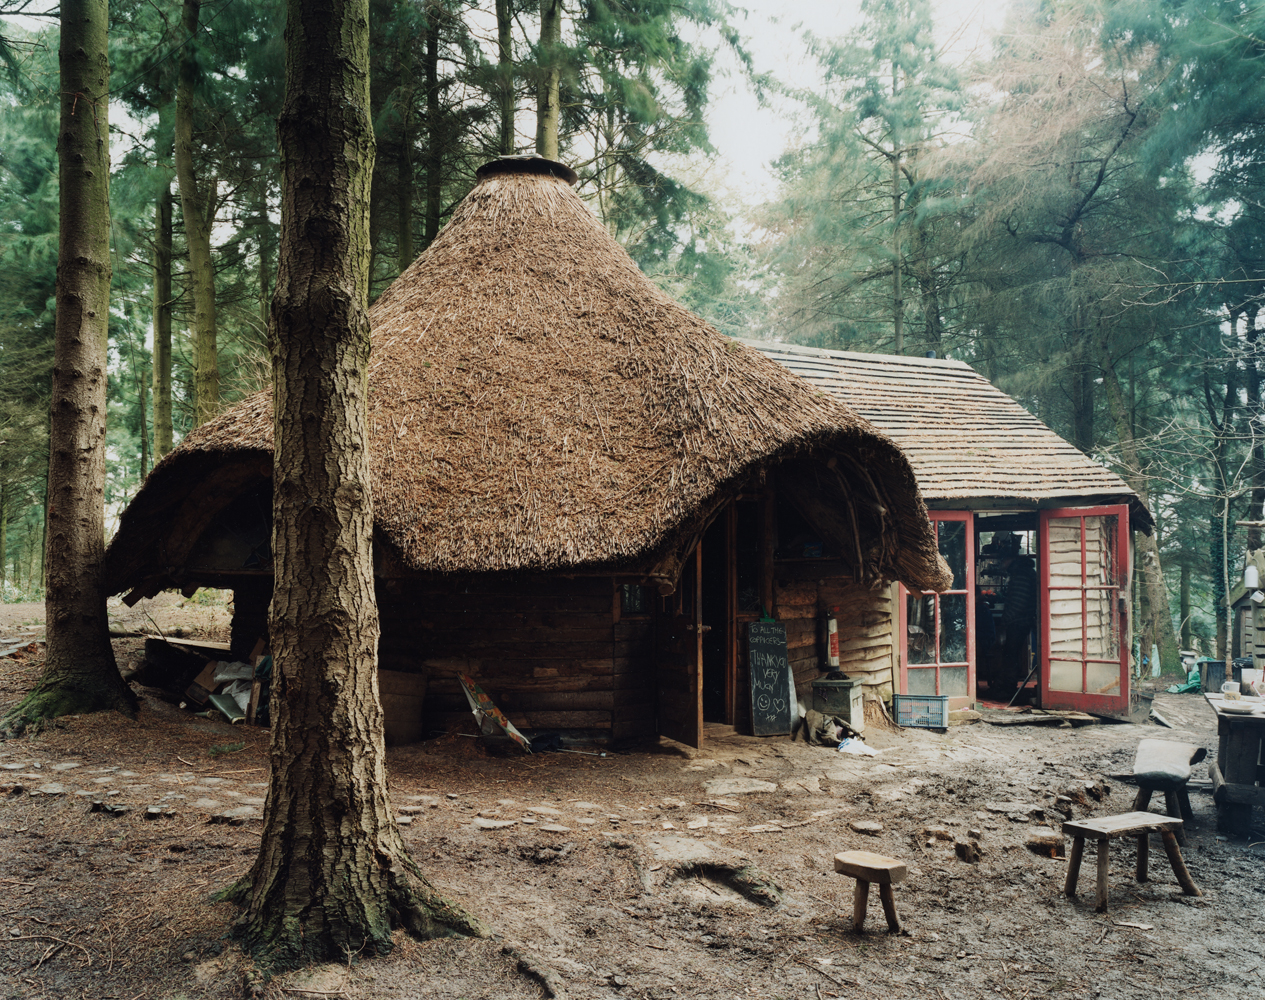 Communal roundhouse